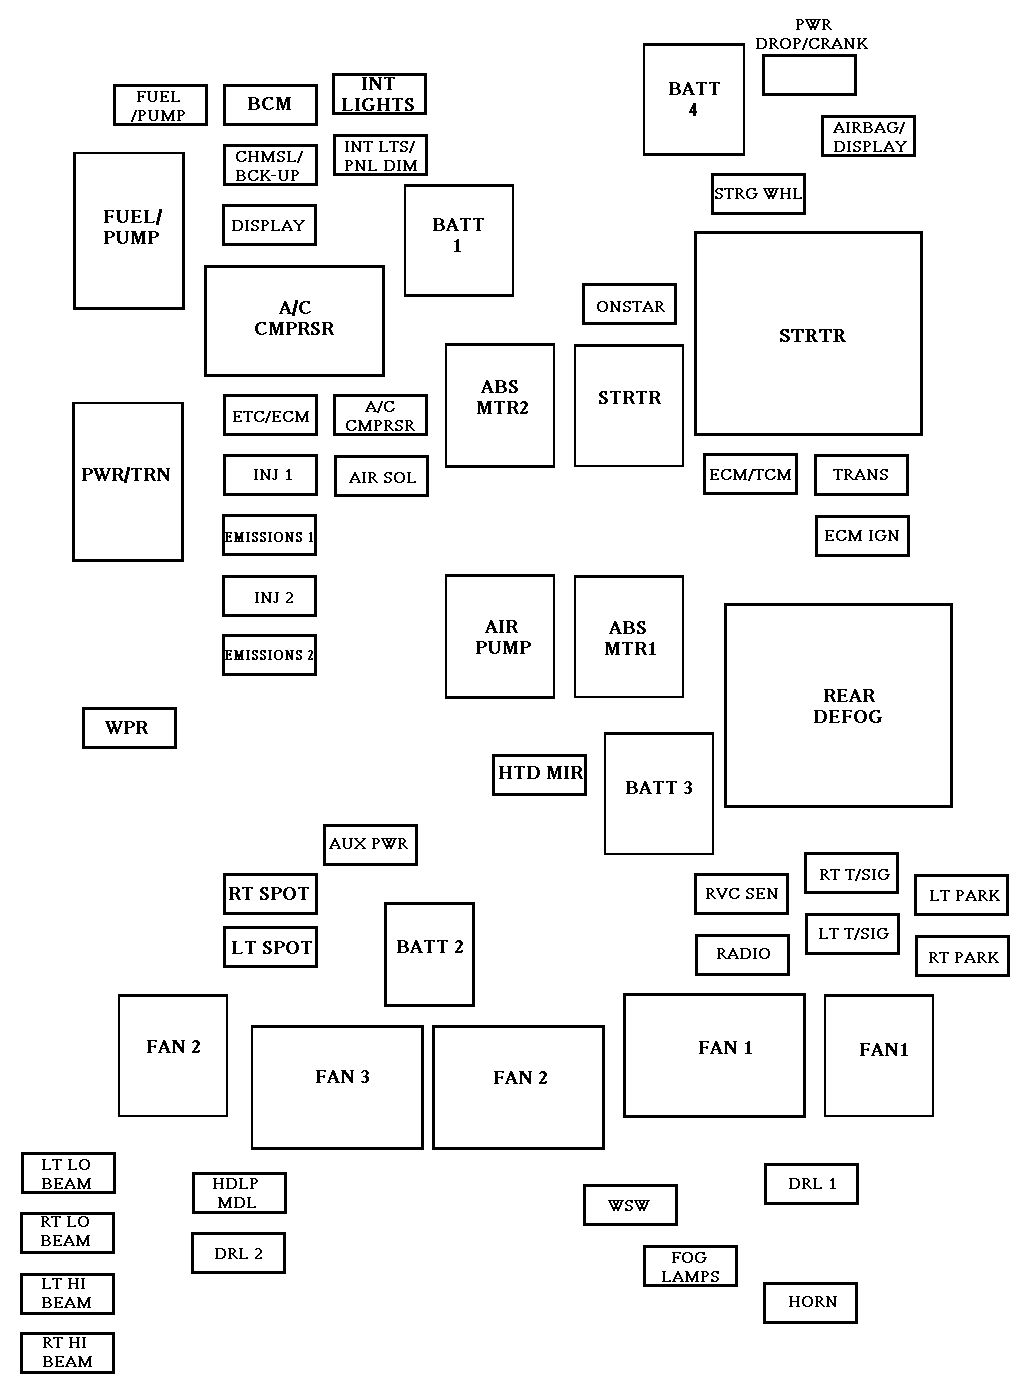 2000 Chevy Monte Carlo Fog Light Wiring Diagram Furthermore 1994 Chevy